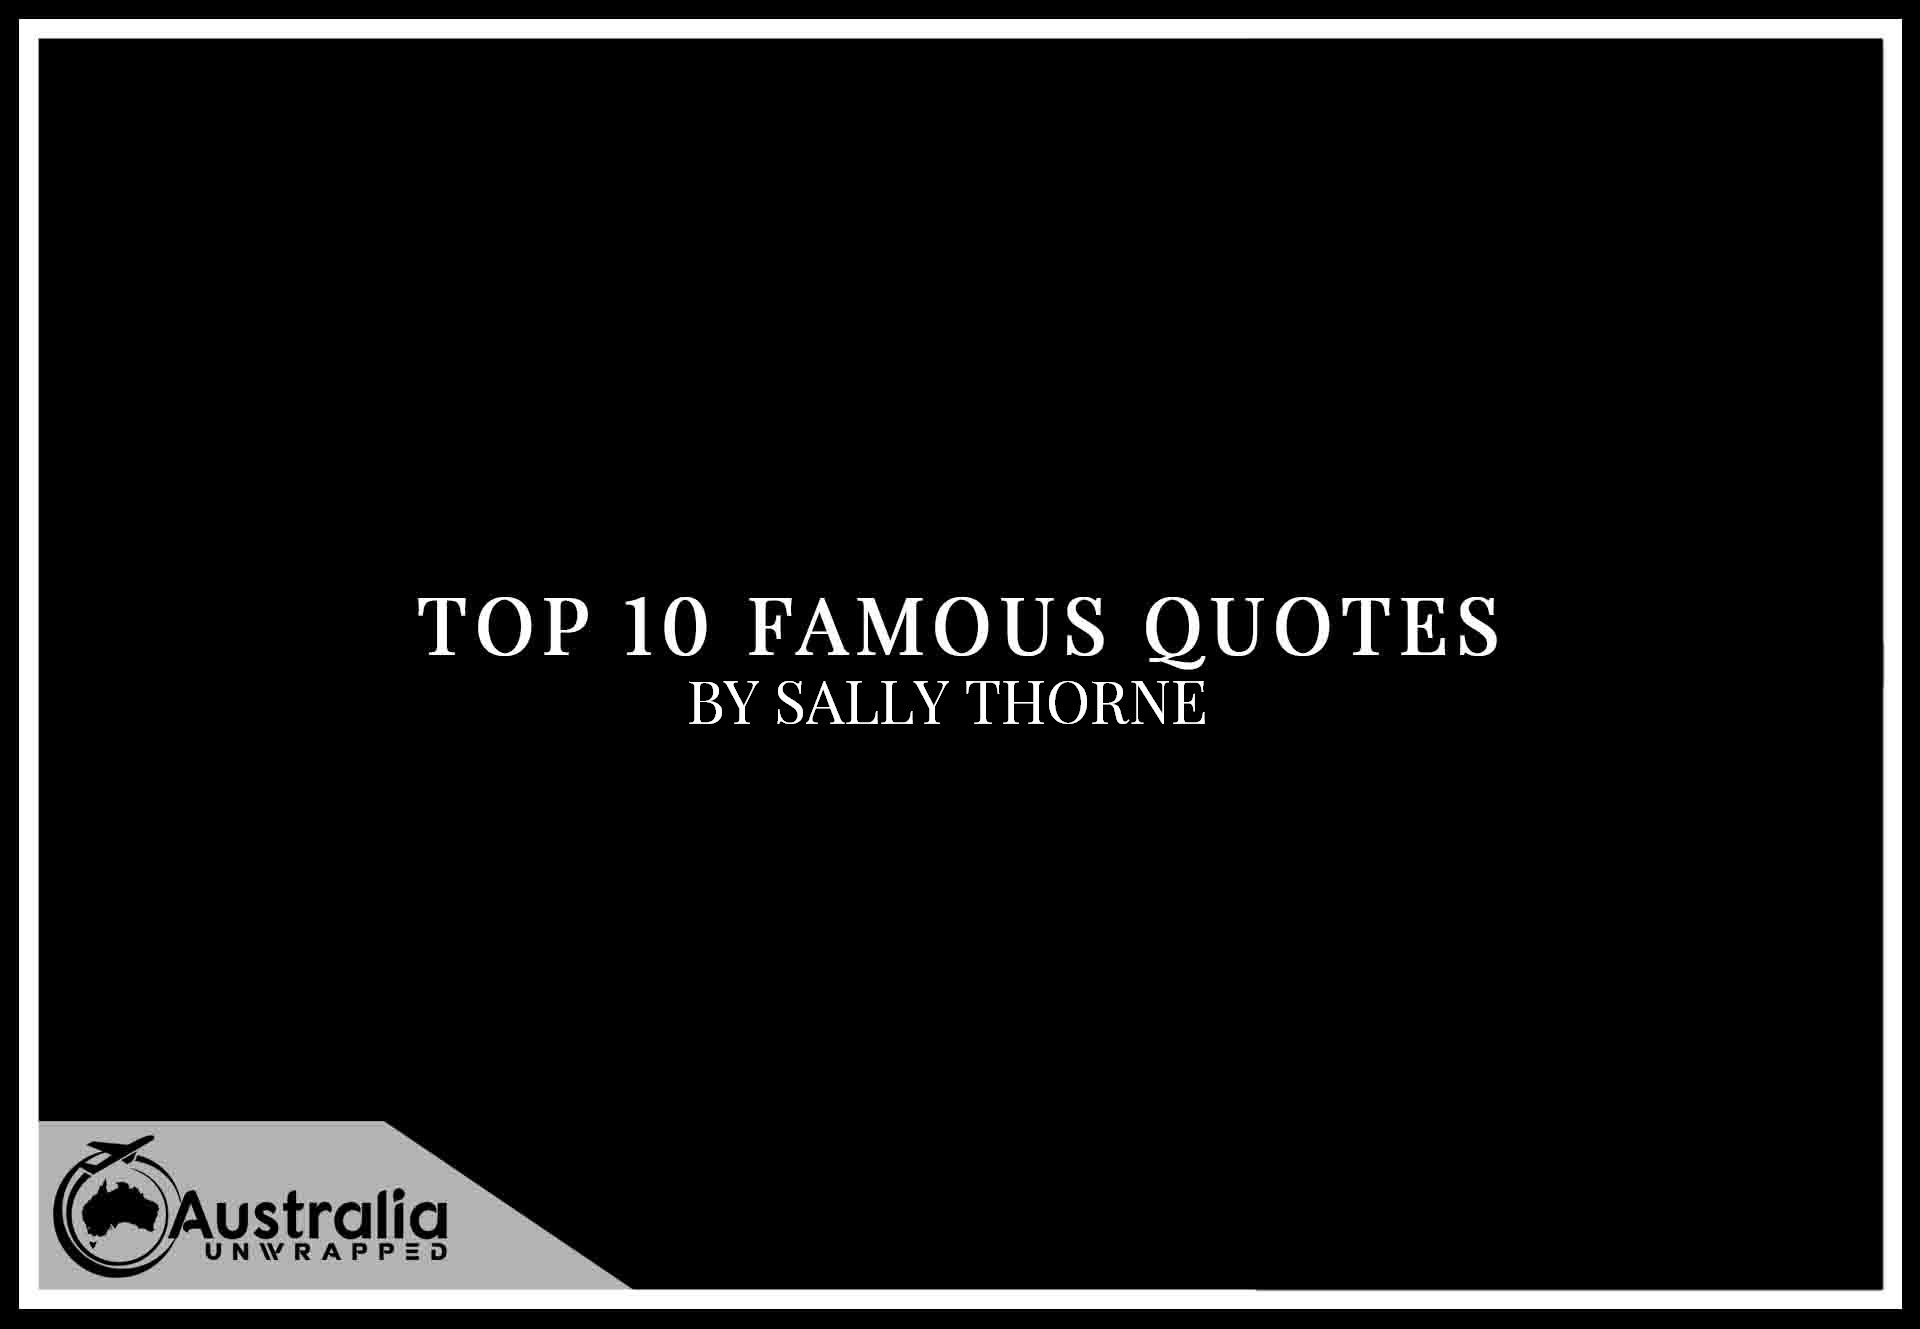 Top 10 Famous Quotes by Author Sally Thorne